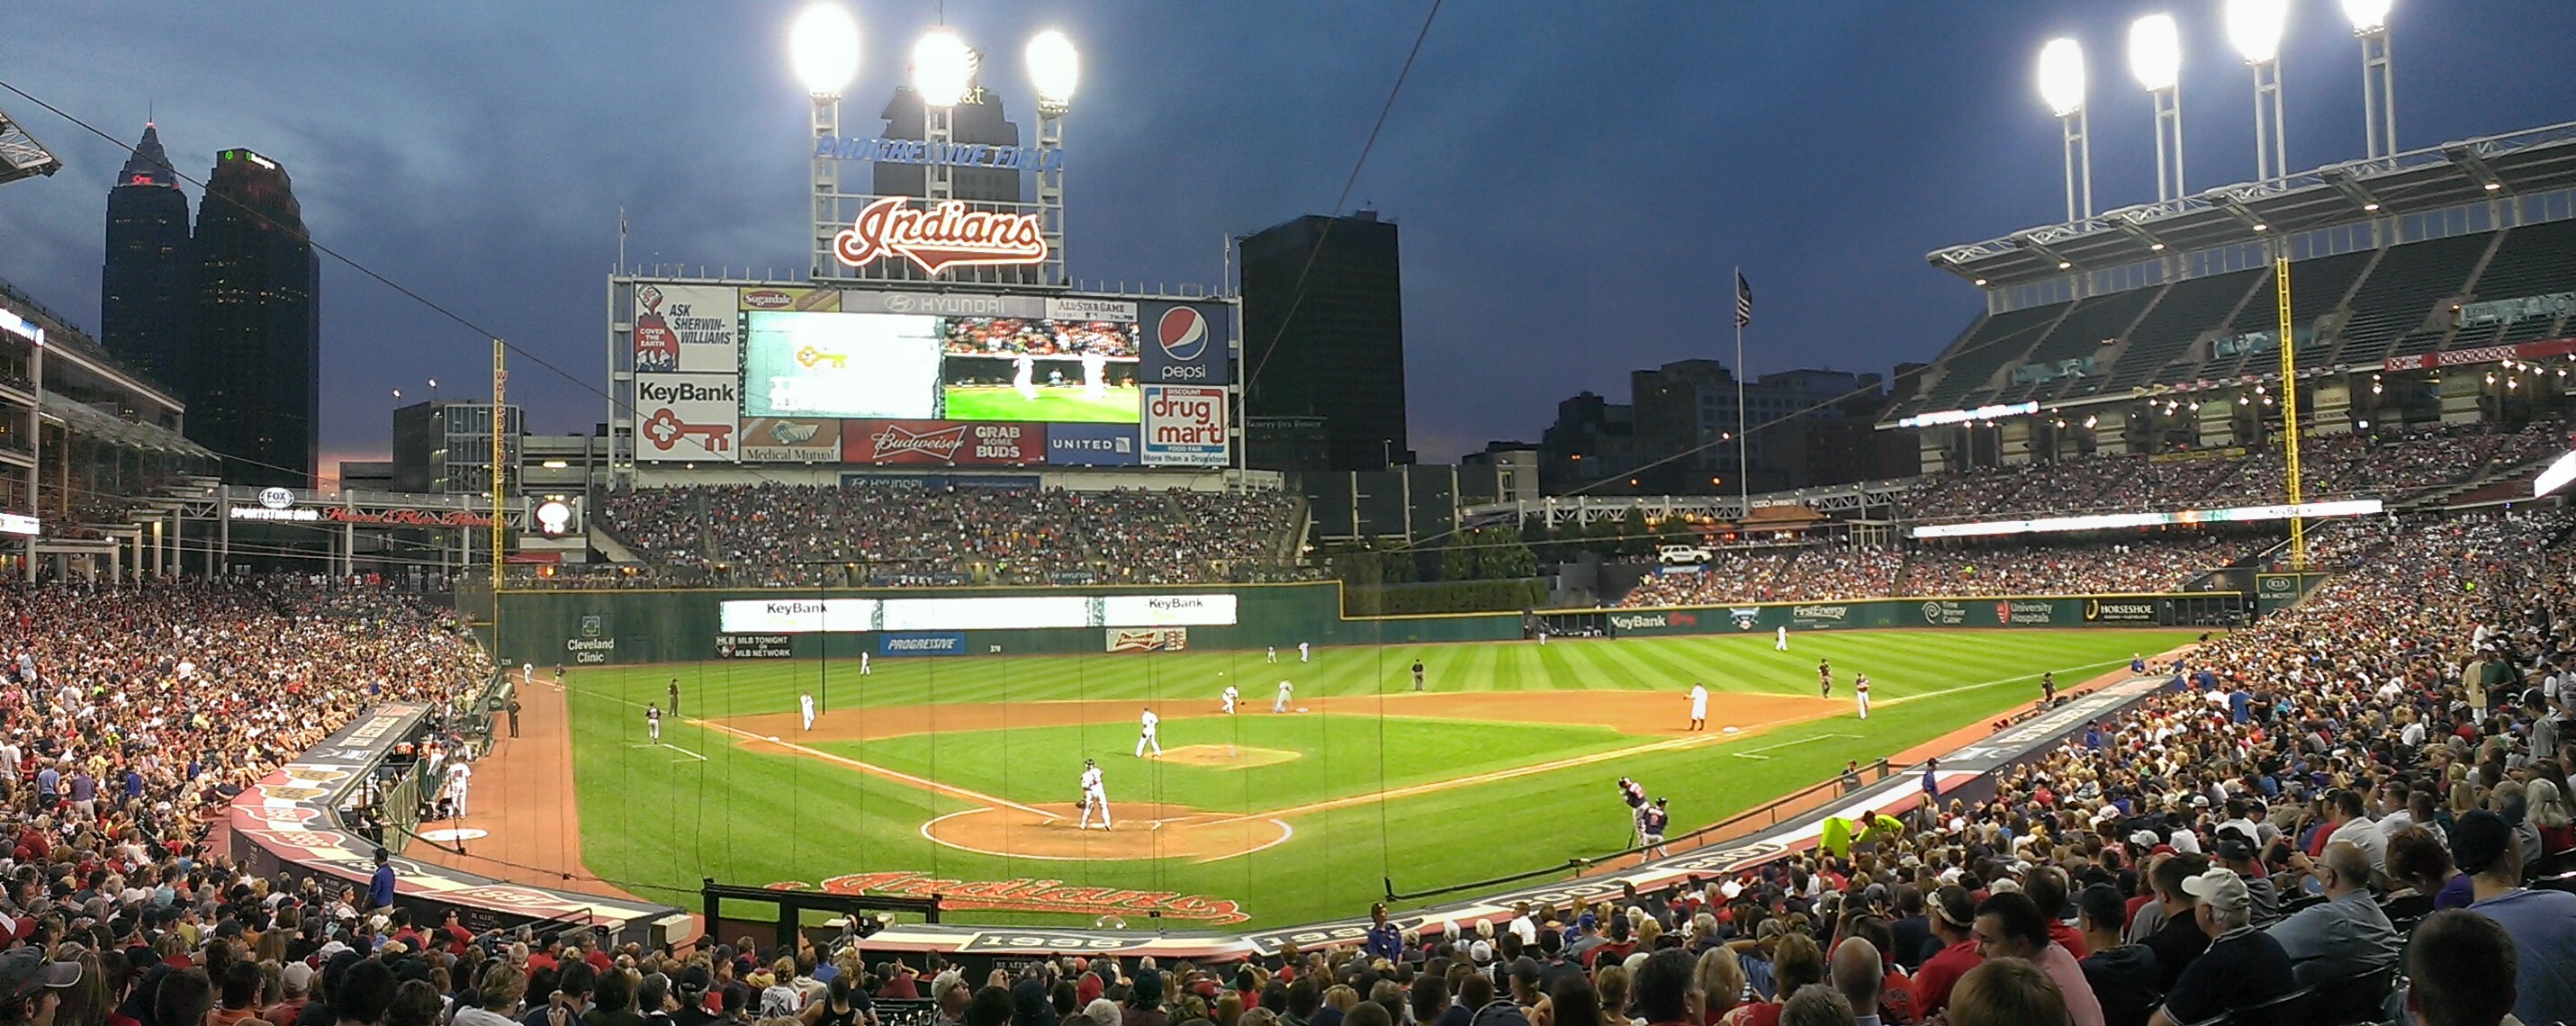 Indians To Host Watch Parties of World Series Road Games at